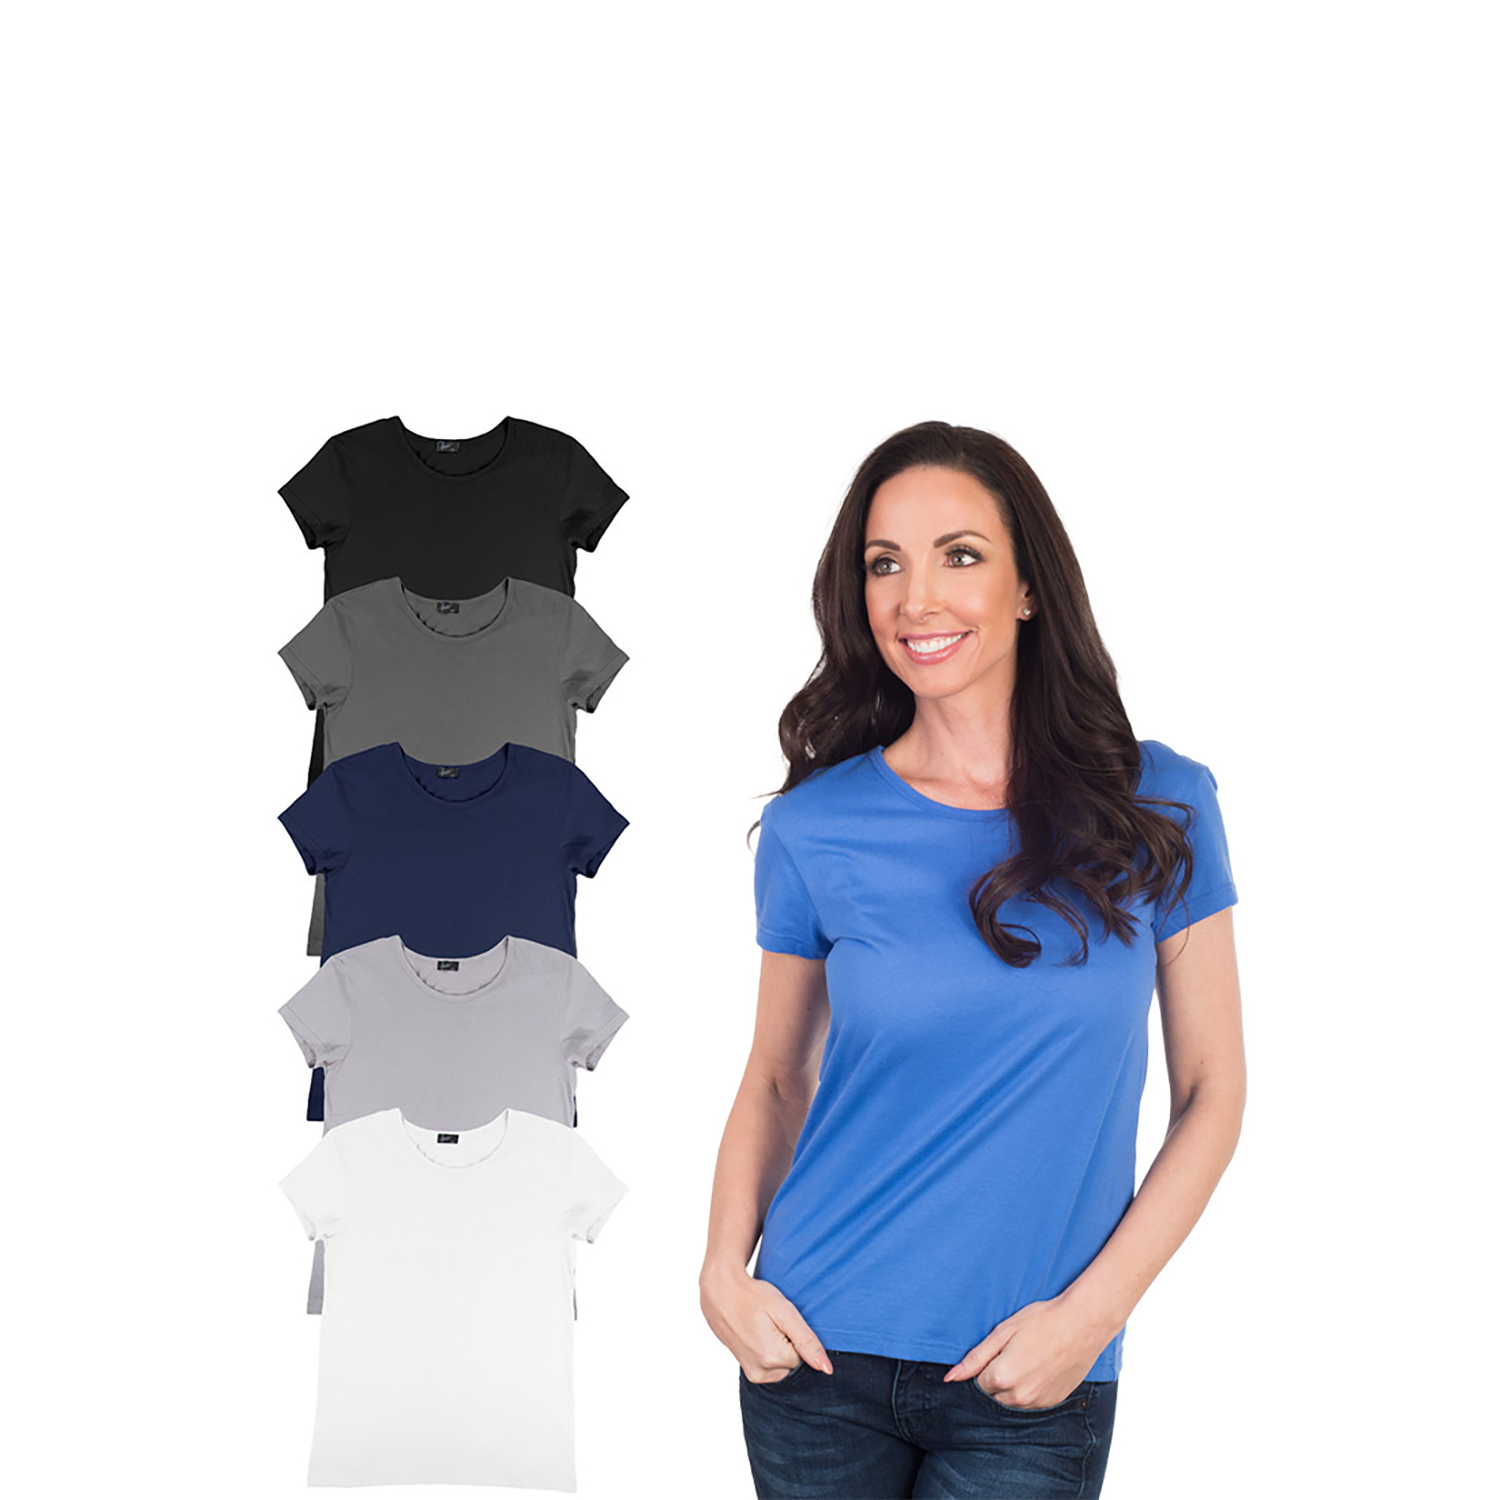 Agiato Women's Basic Crew Neck T-Shirt 6-Pack